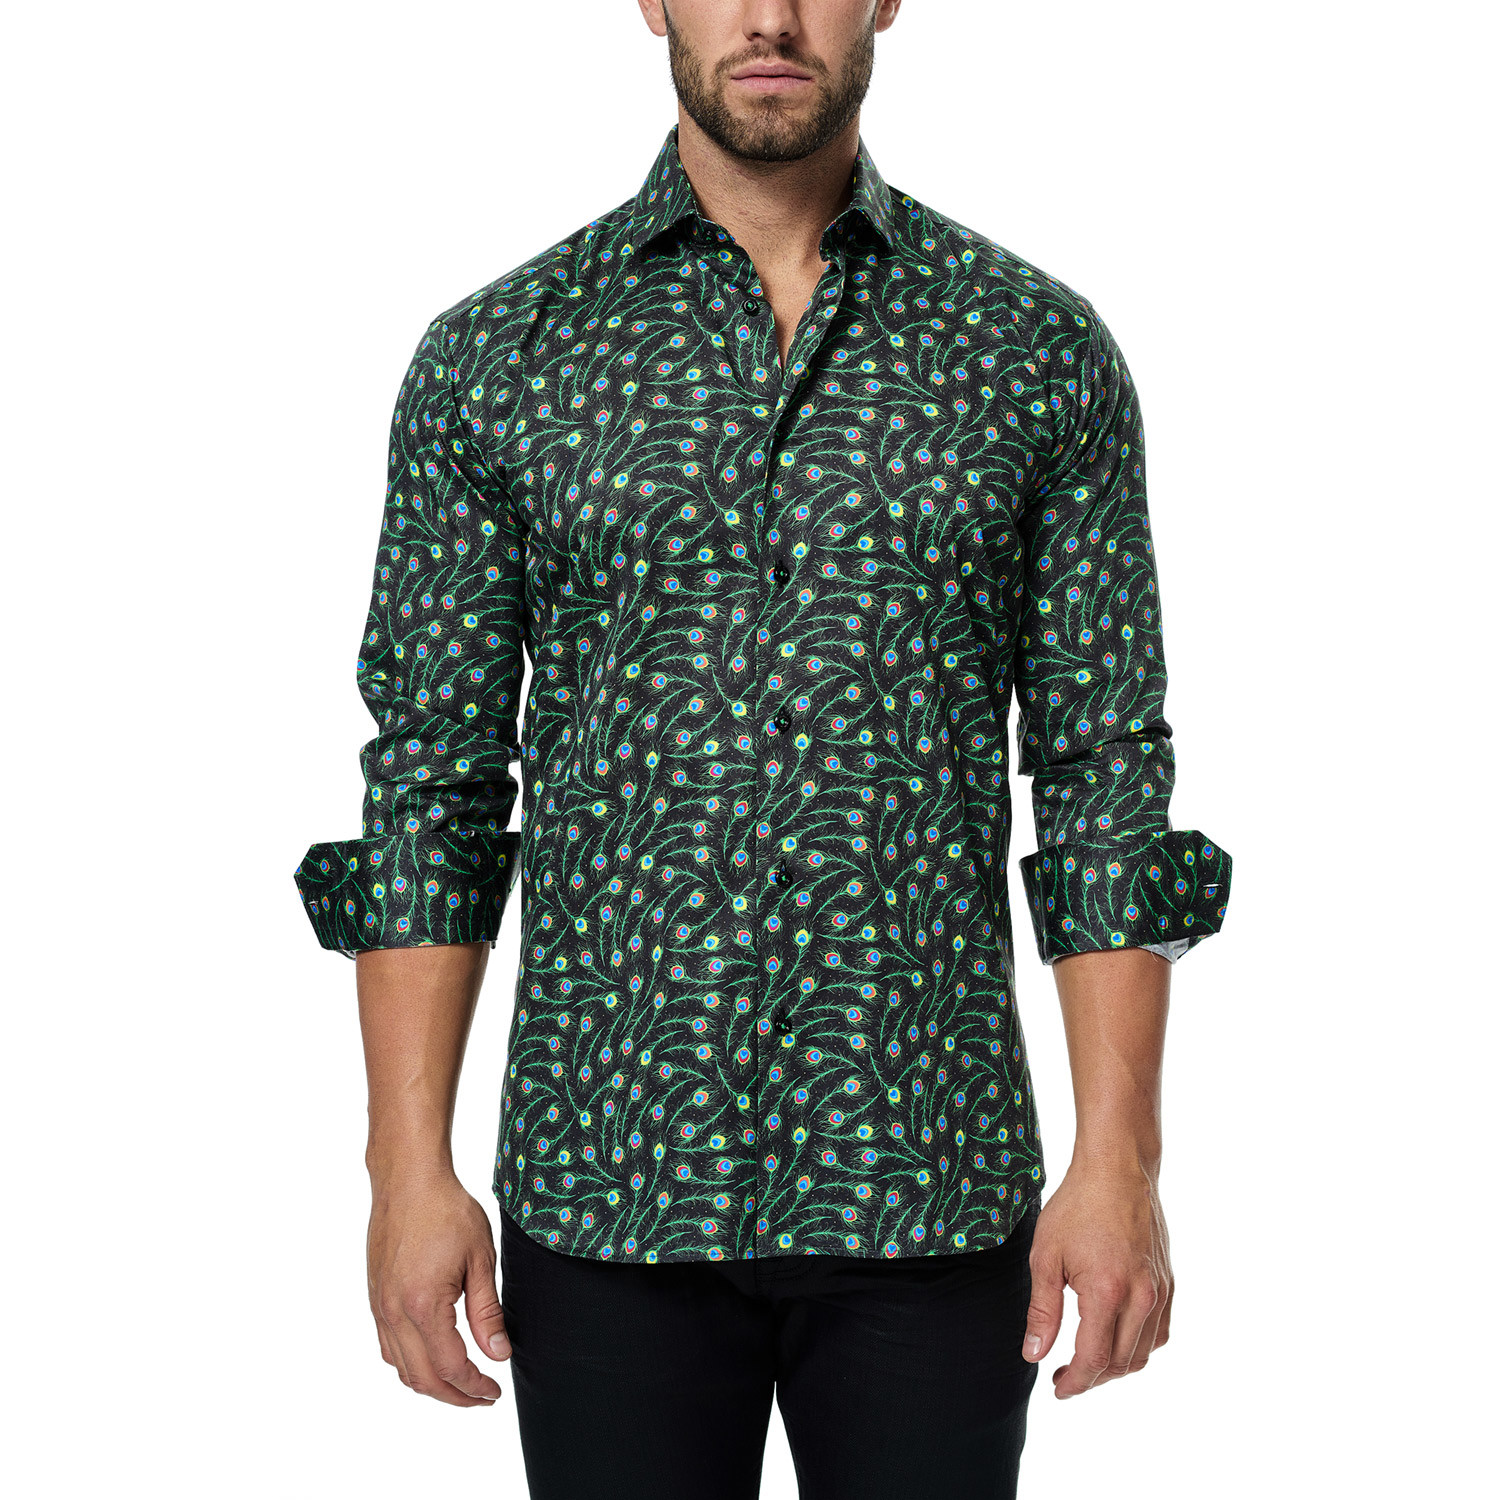 You searched for: dark green button up! Etsy is the home to thousands of handmade, vintage, and one-of-a-kind products and gifts related to your search. No matter what you're looking for or where you are in the world, our global marketplace of sellers can help you .